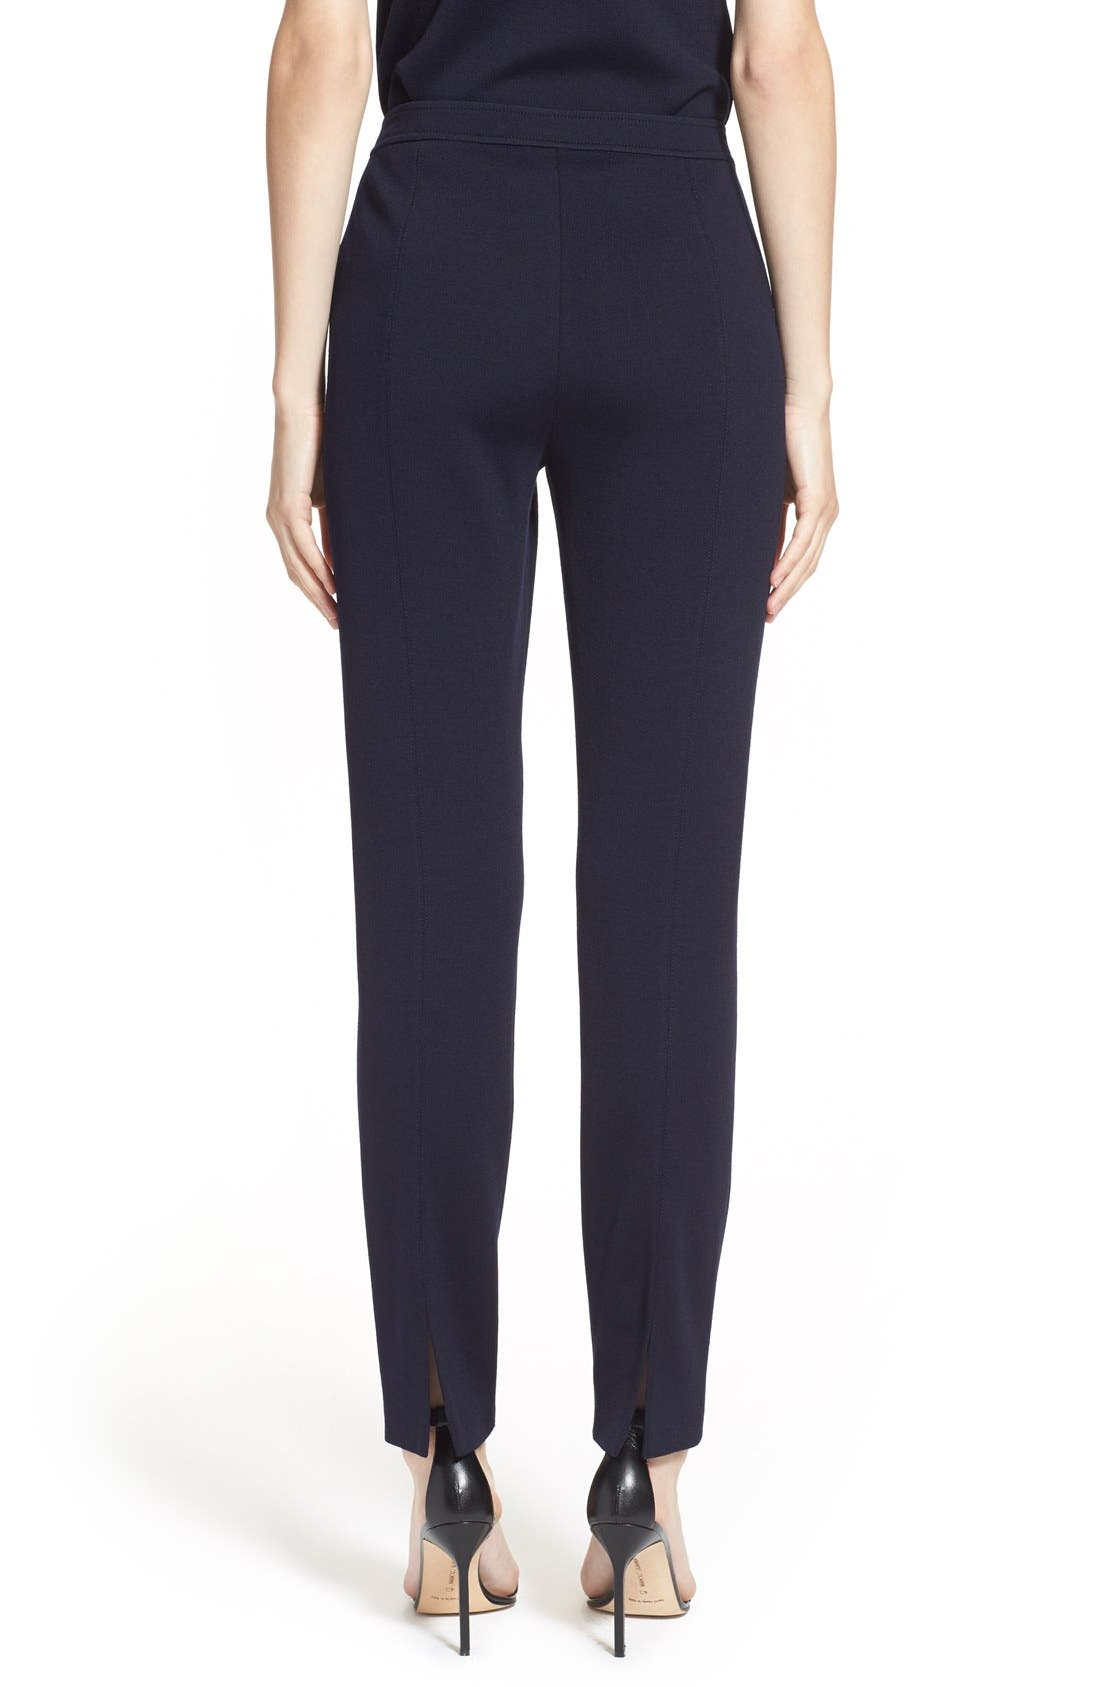 'Alexa' Stretch Milano Knit Ankle Pants,                             Alternate thumbnail 6, color,                             NAVY